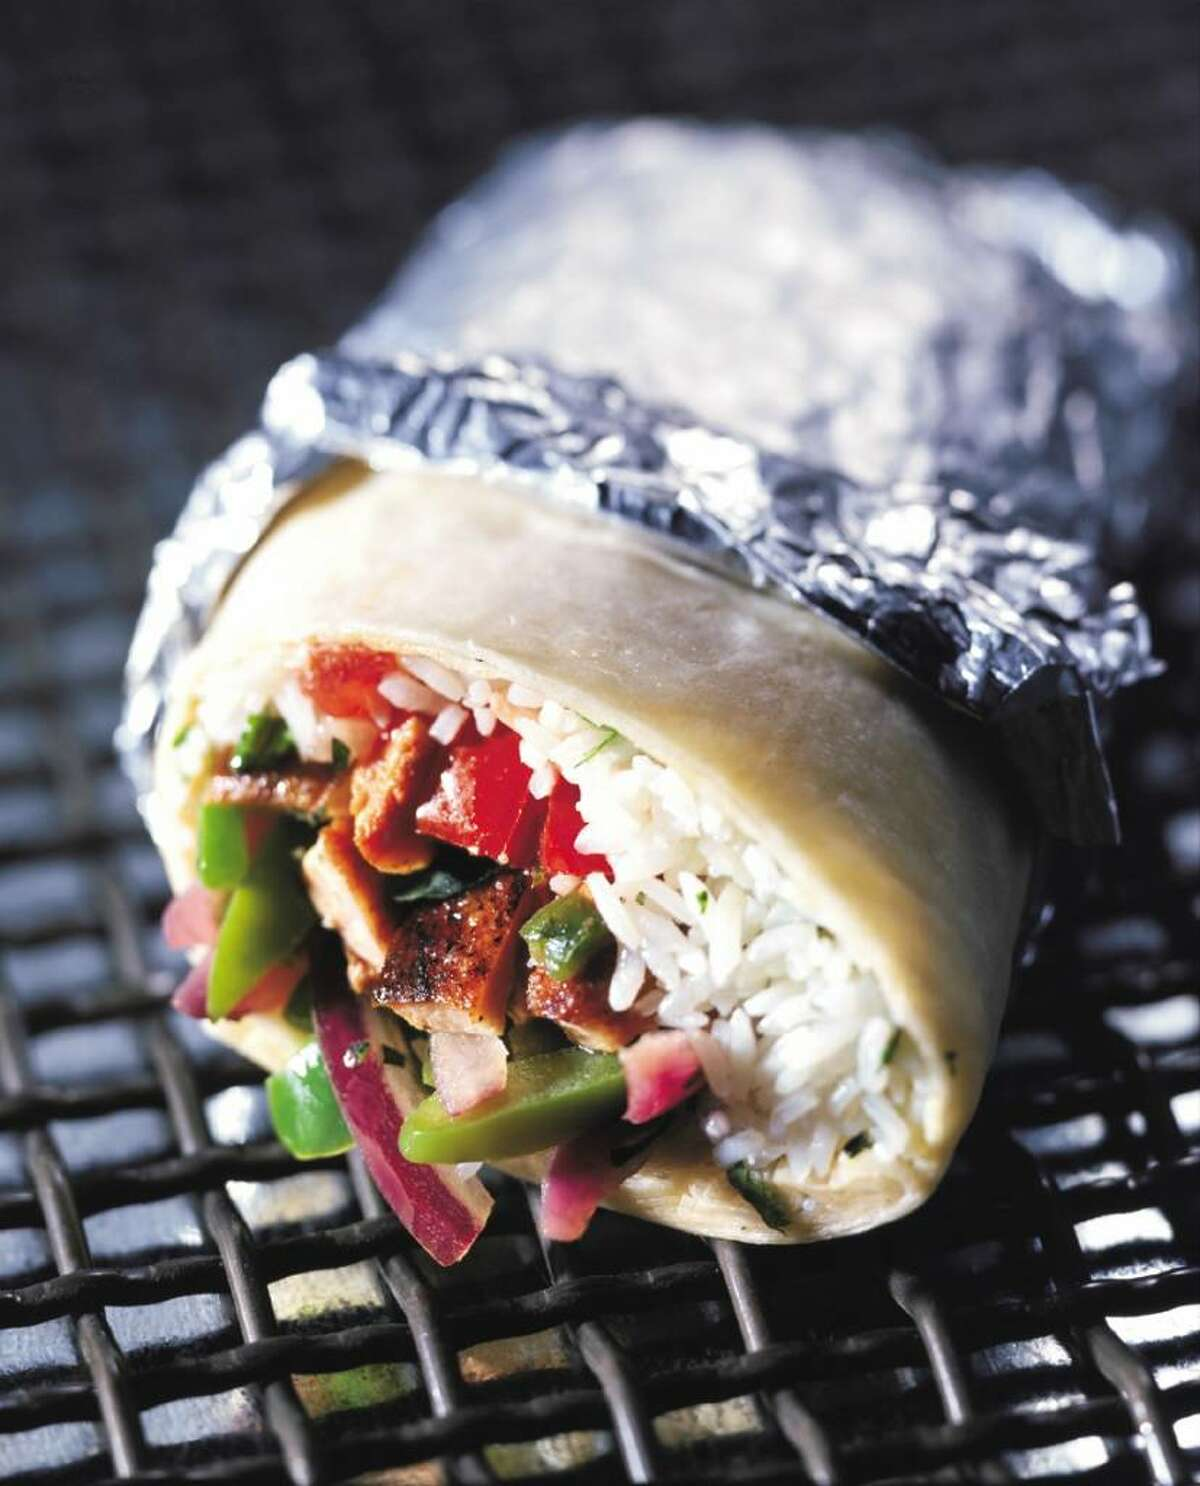 Chipotle's commitment to using organic, locally sourced ingredients can be seen in its tacos, burritos and salads. (Chipotle Mexican Grill)